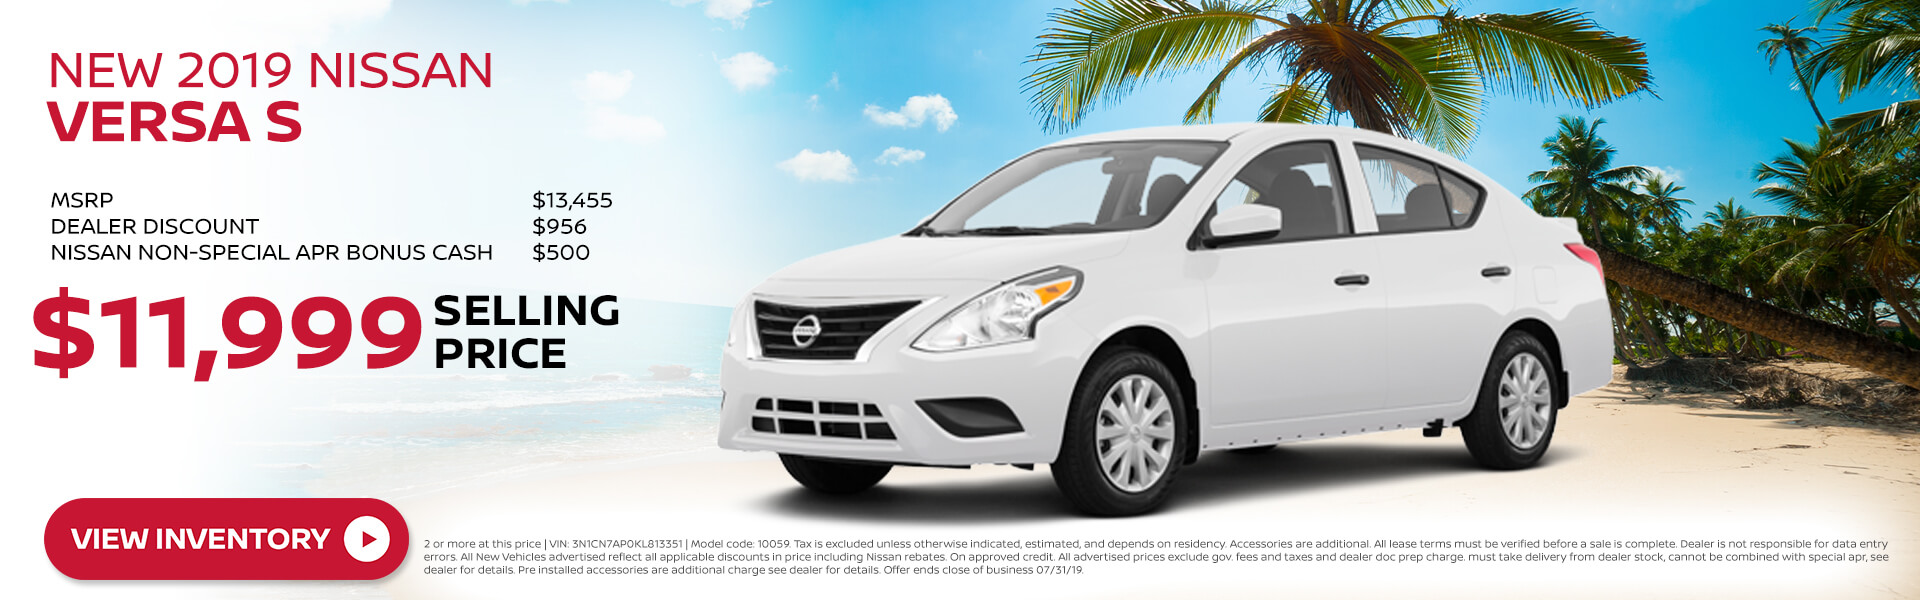 2018 Nissan Versa - Purchase for $13,455